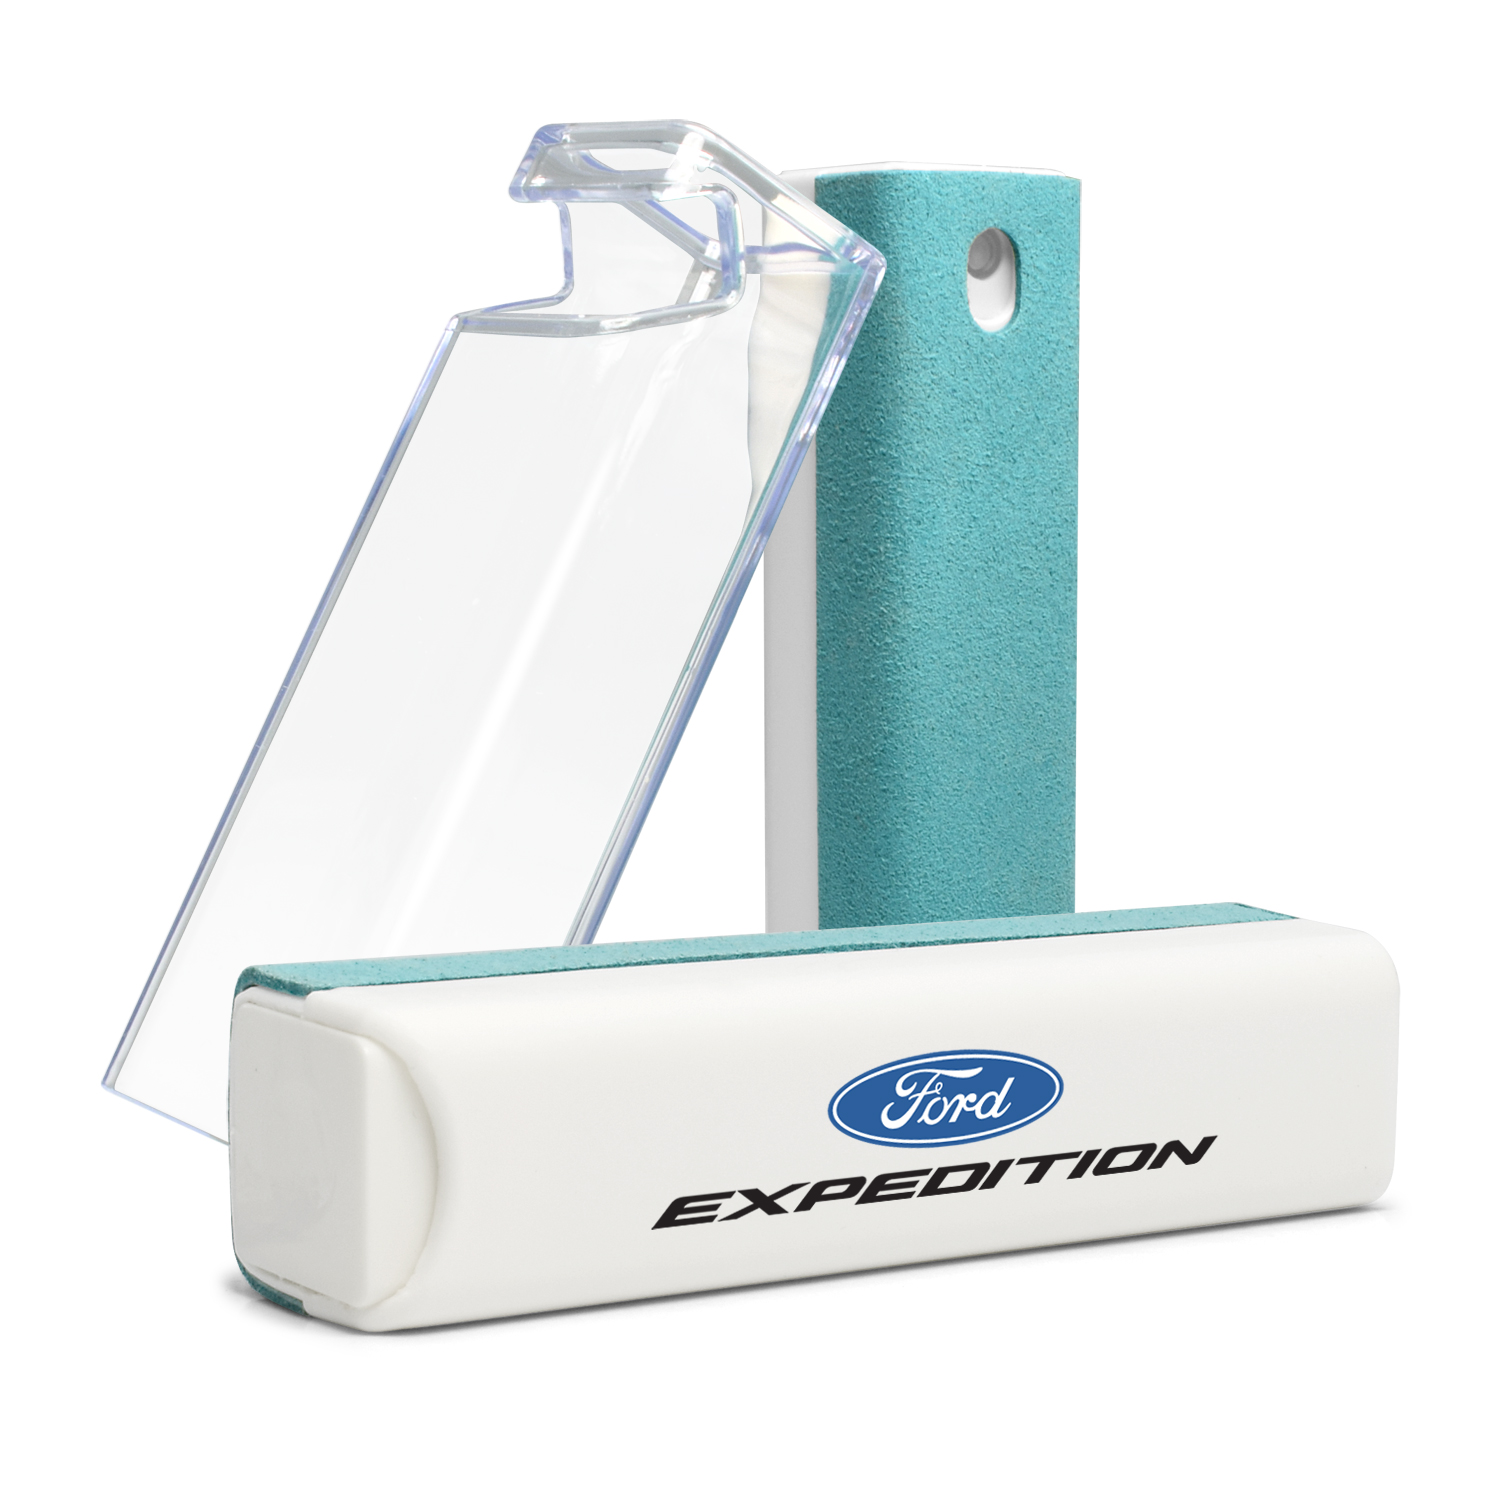 Ford Expedition Blue Microfiber Screen Cleaner for Car Navigation, Cell Phone